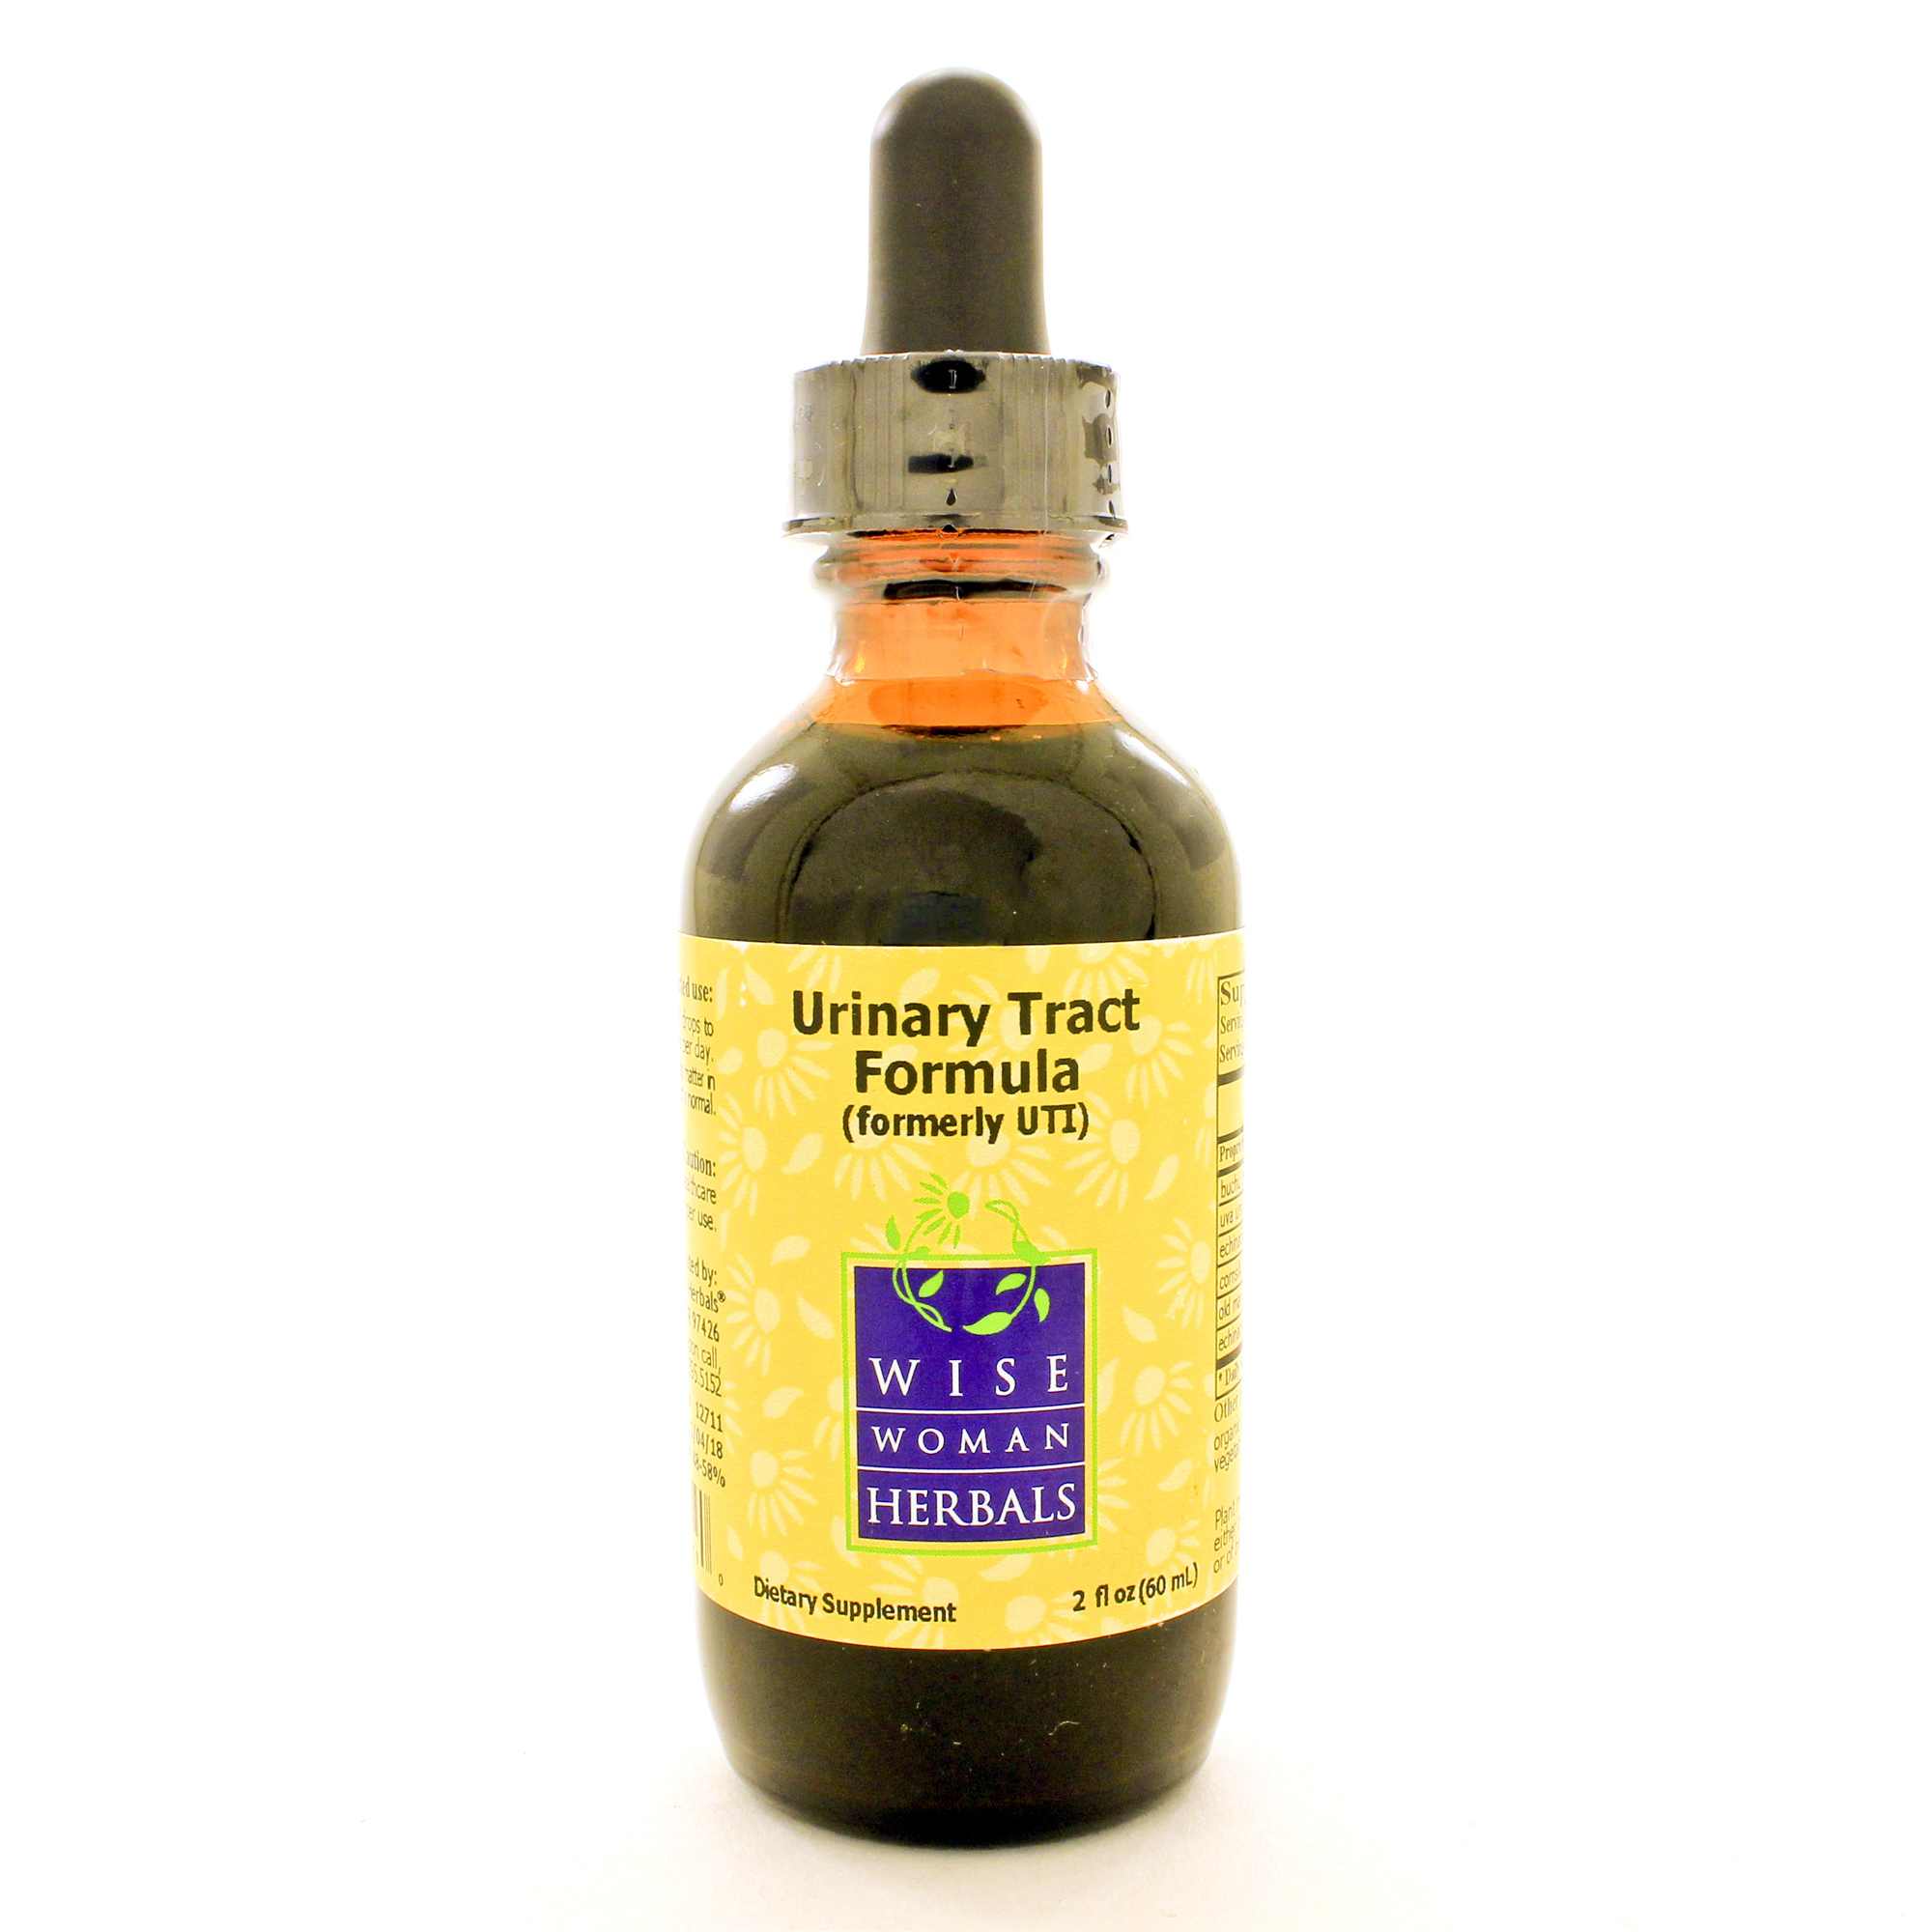 Wise Woman Herbals Urinary Tract Formula (formerly UTI Formula) 2oz 2 oz Liquid